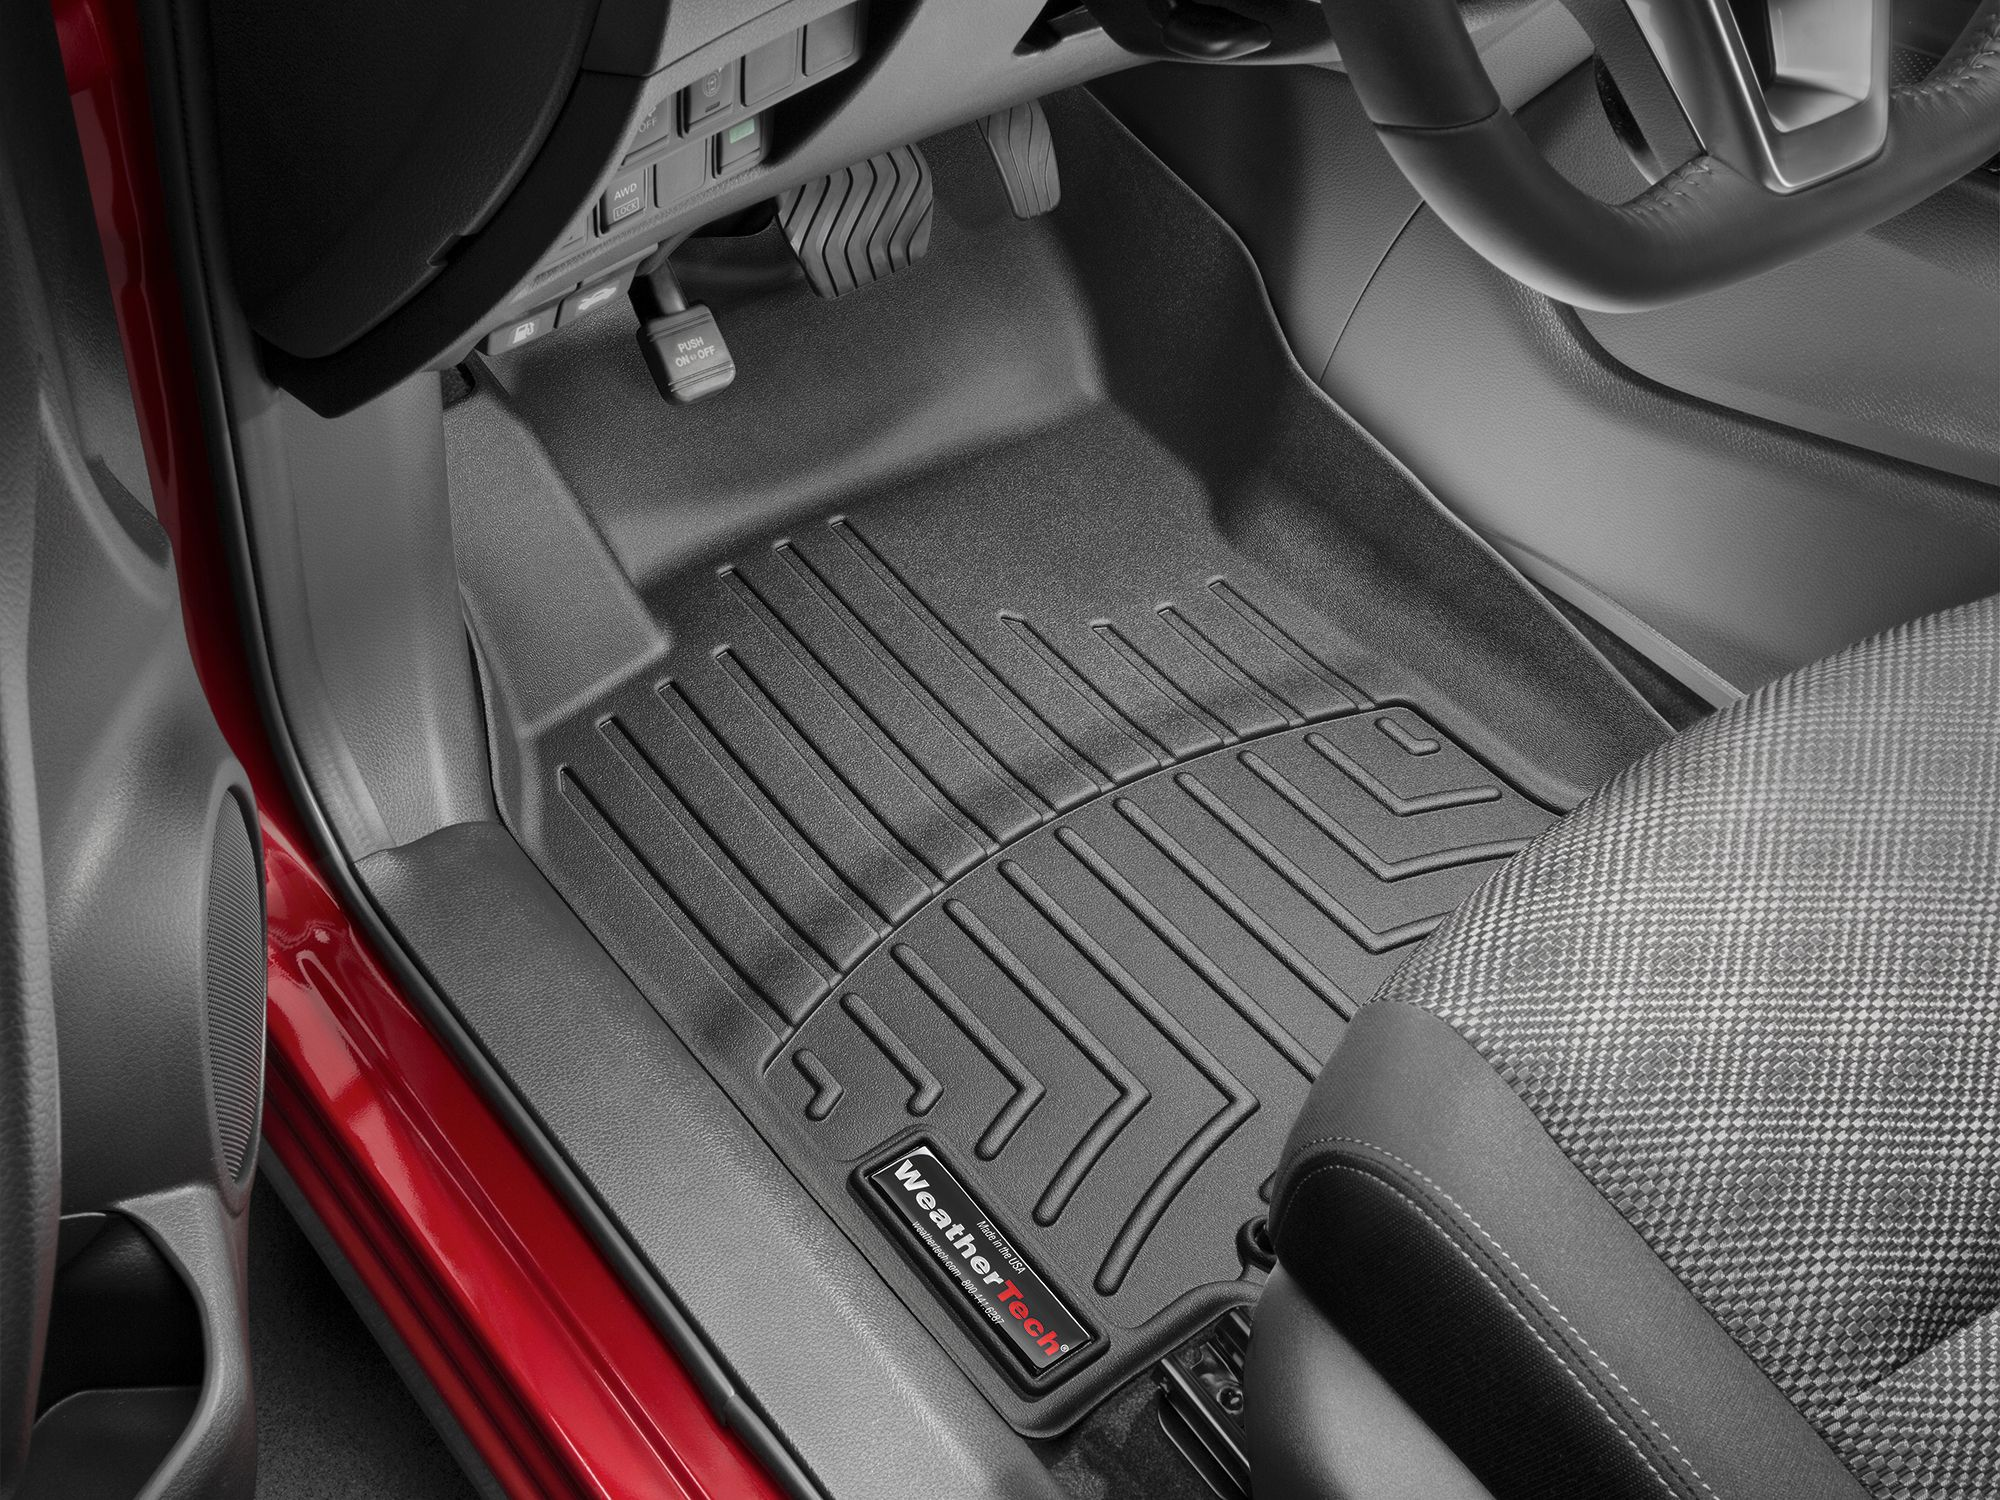 A Quick And Easy Way To Freshen Up Your Vehicle Interior Is With A